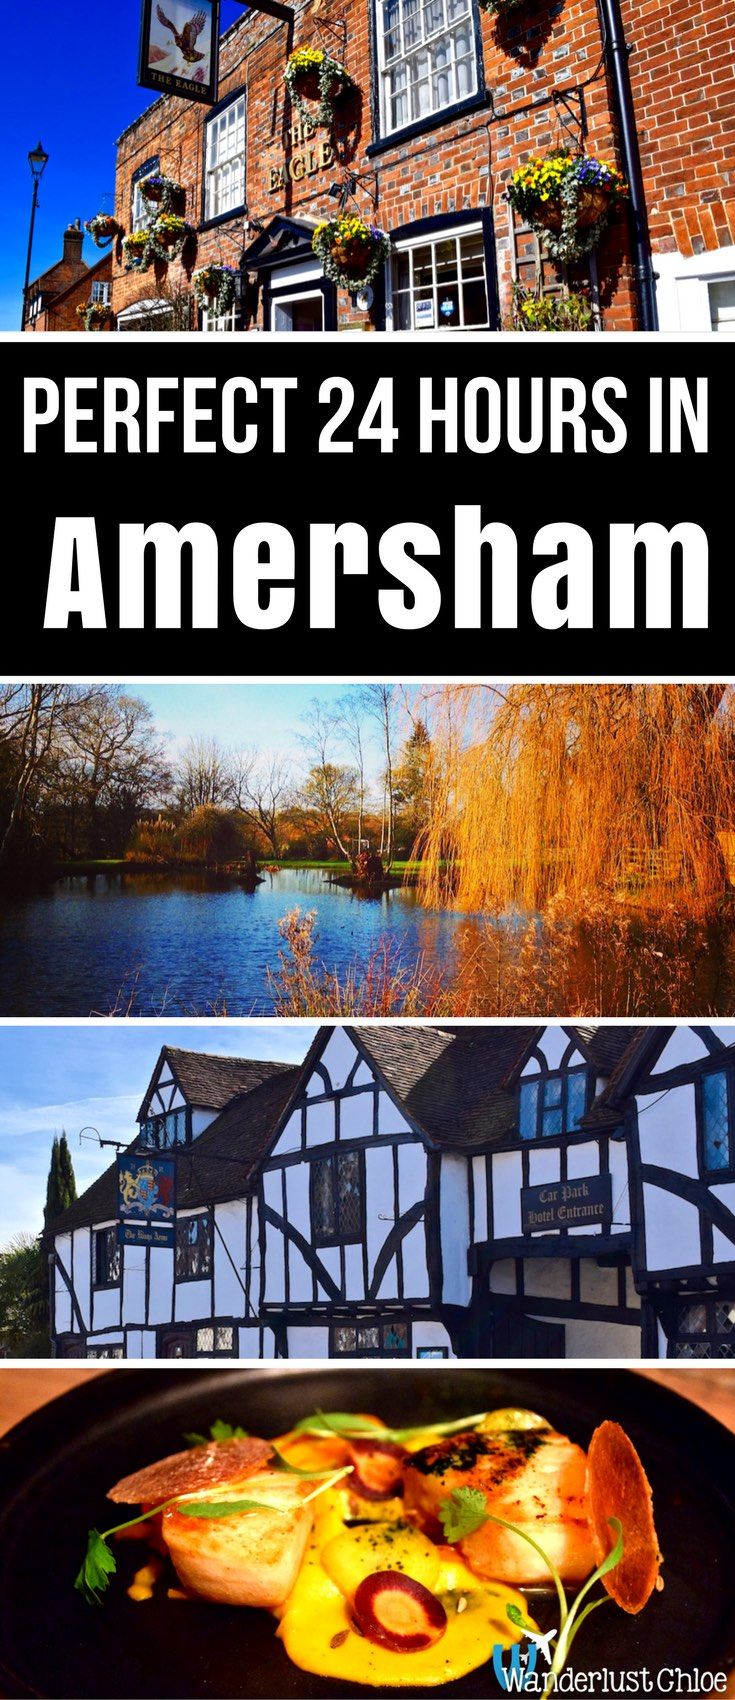 Perfect 24 Hours In Amersham, England. Top restaurants, charming cafes, historic architecture, pampering, shopping and did I mention it's even on the tube? It's not difficult to see why Amersham makes a perfect 24-hour break from London! http://www.wanderlustchloe.com/amersham-buckinghamshire-perfect-24-hour-break-london/